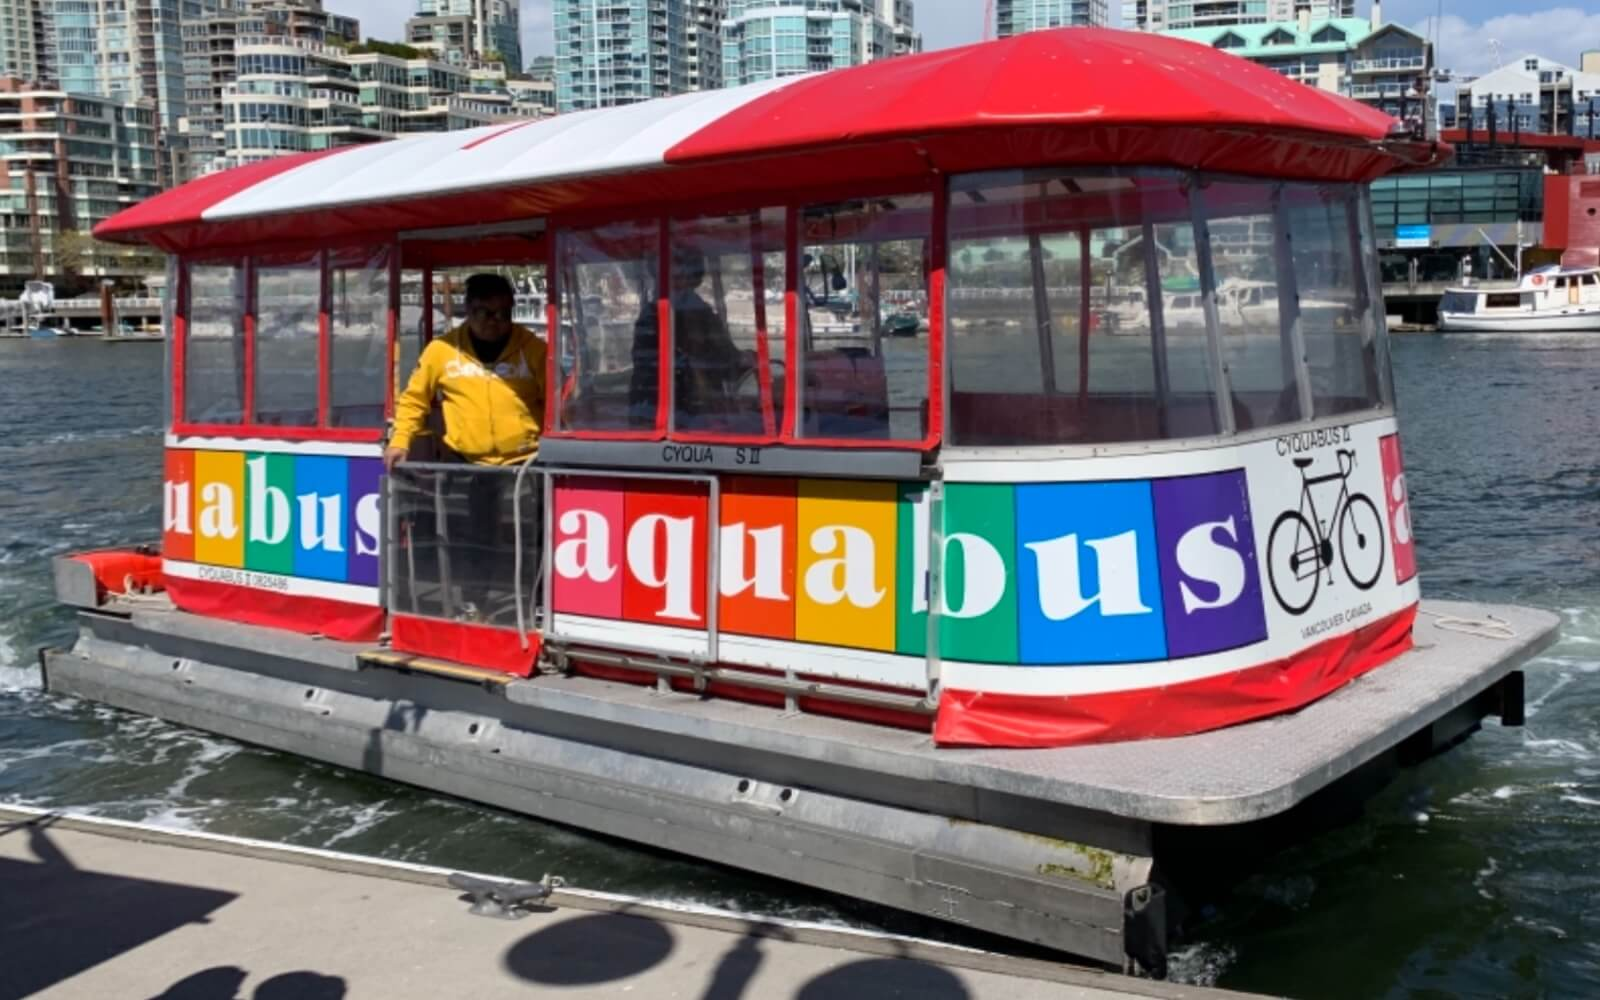 aquabus docking at granville island in vancouver bc canada